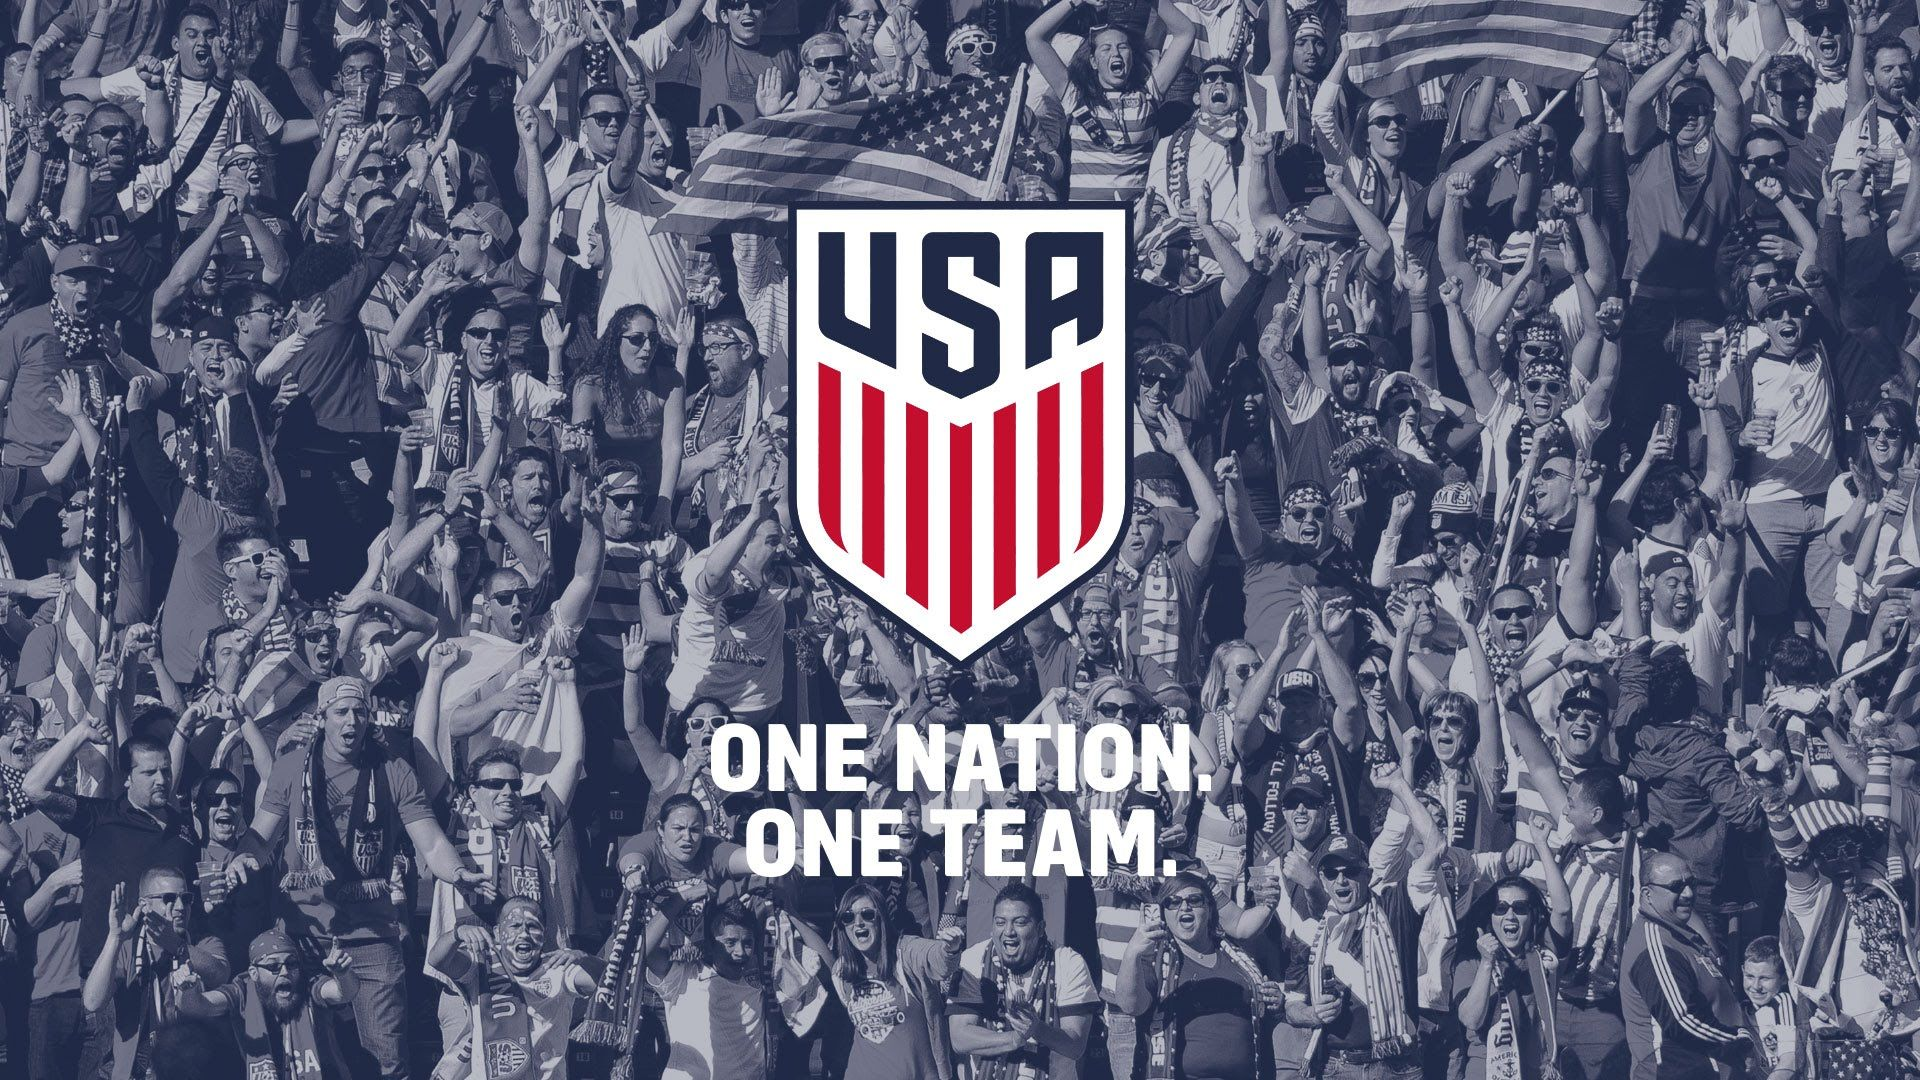 Pin By Bryan Gettman On Soccer Usa Soccer Women Us Soccer Usa Soccer Team